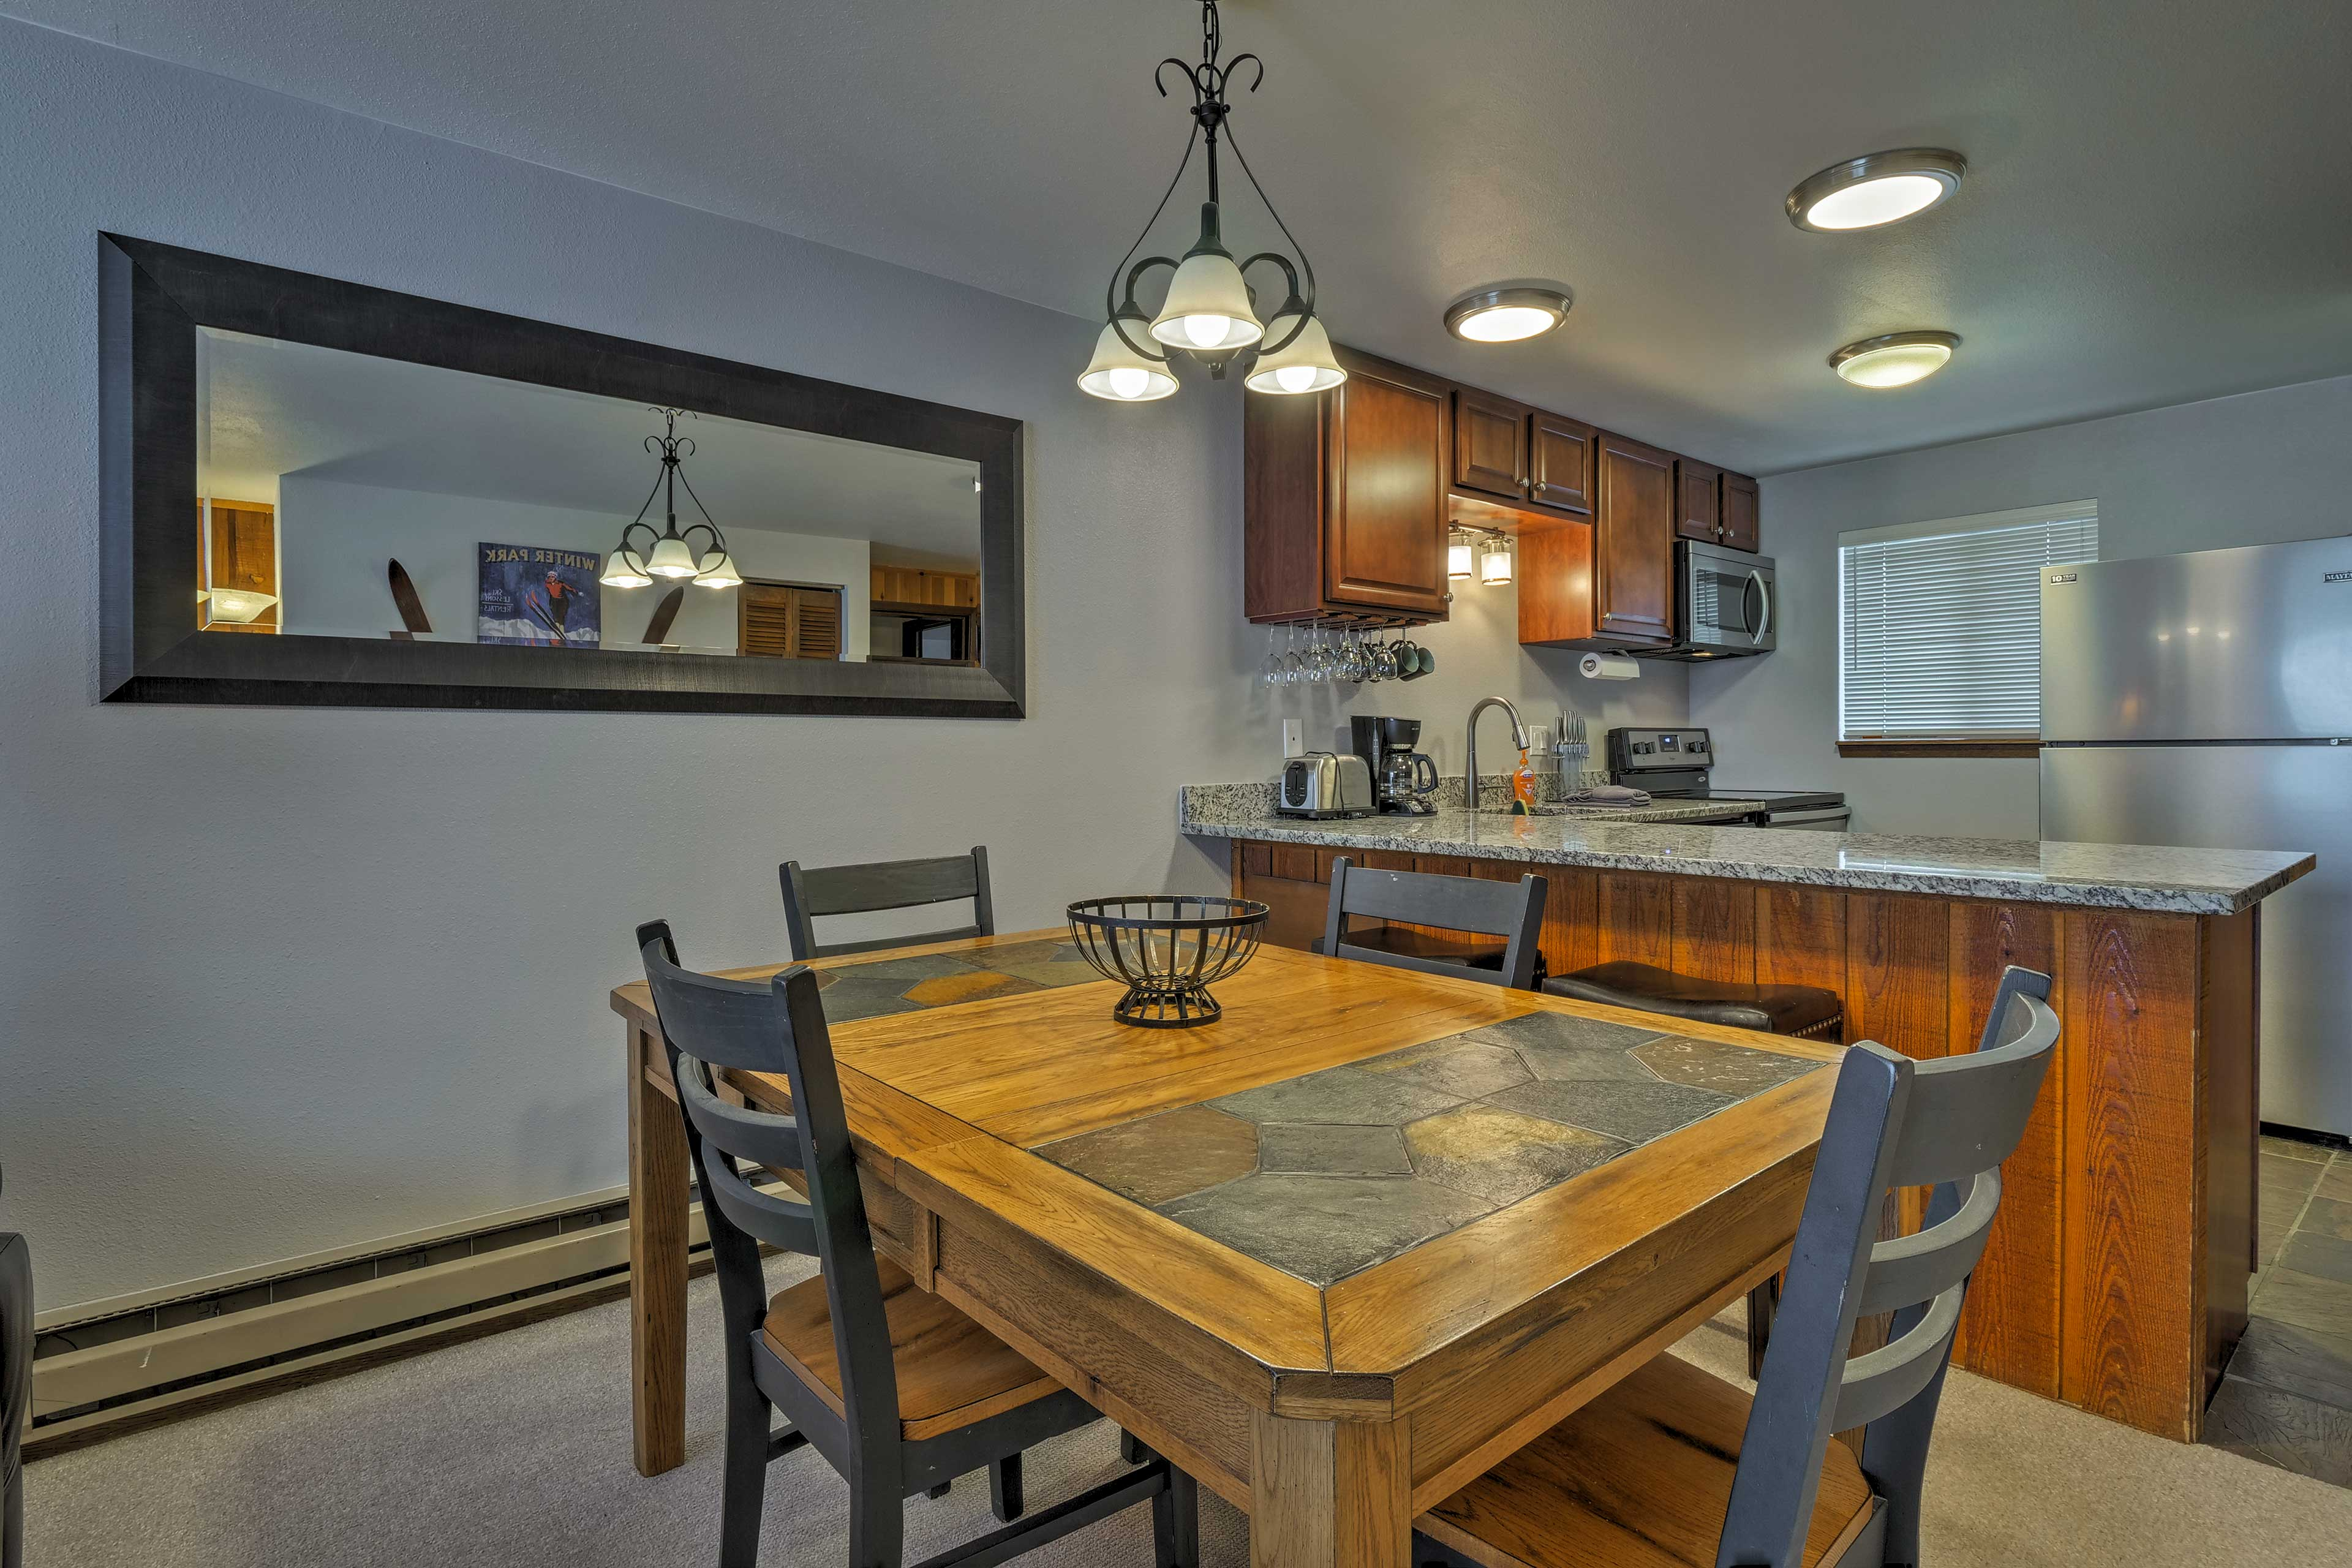 Feast on a tasty meal at the 4-person dining table.